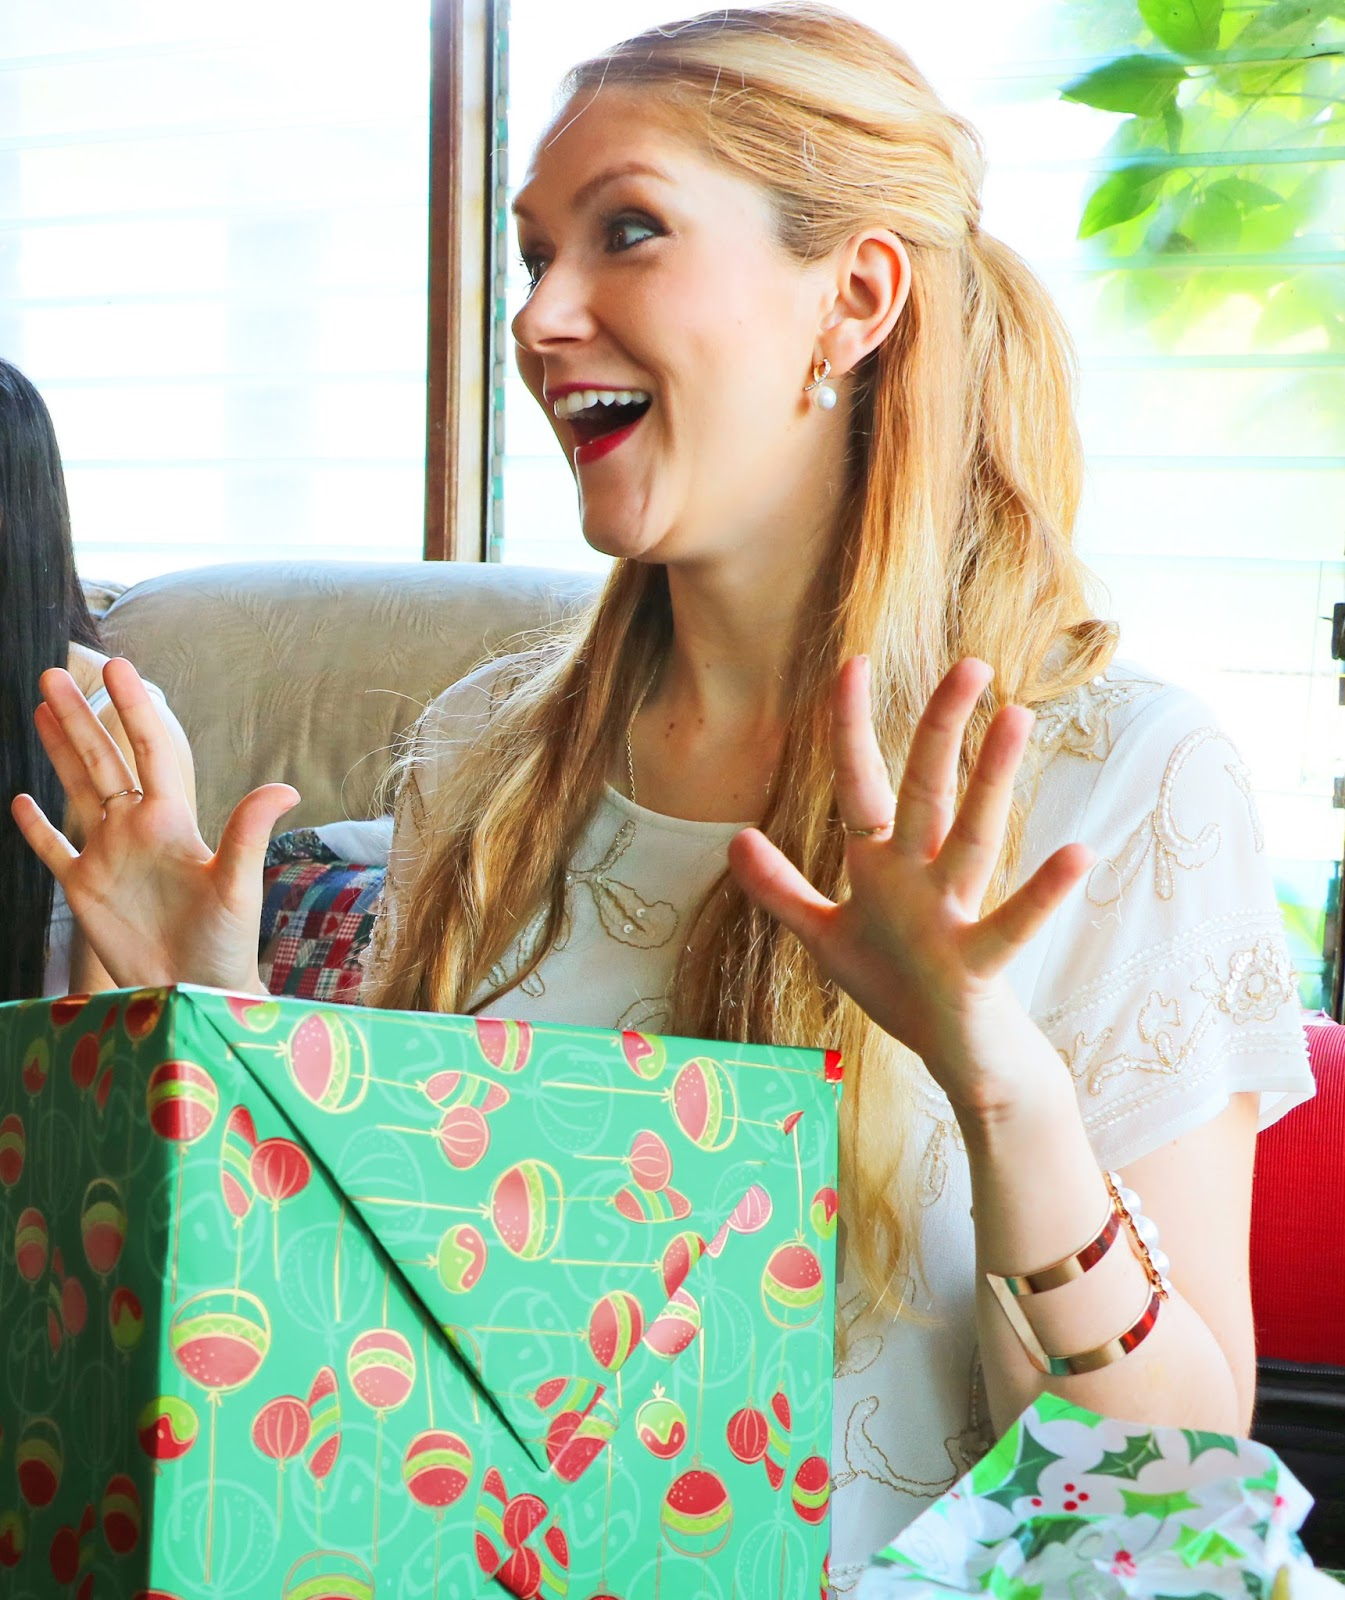 The happiness of opening Christmas presents!